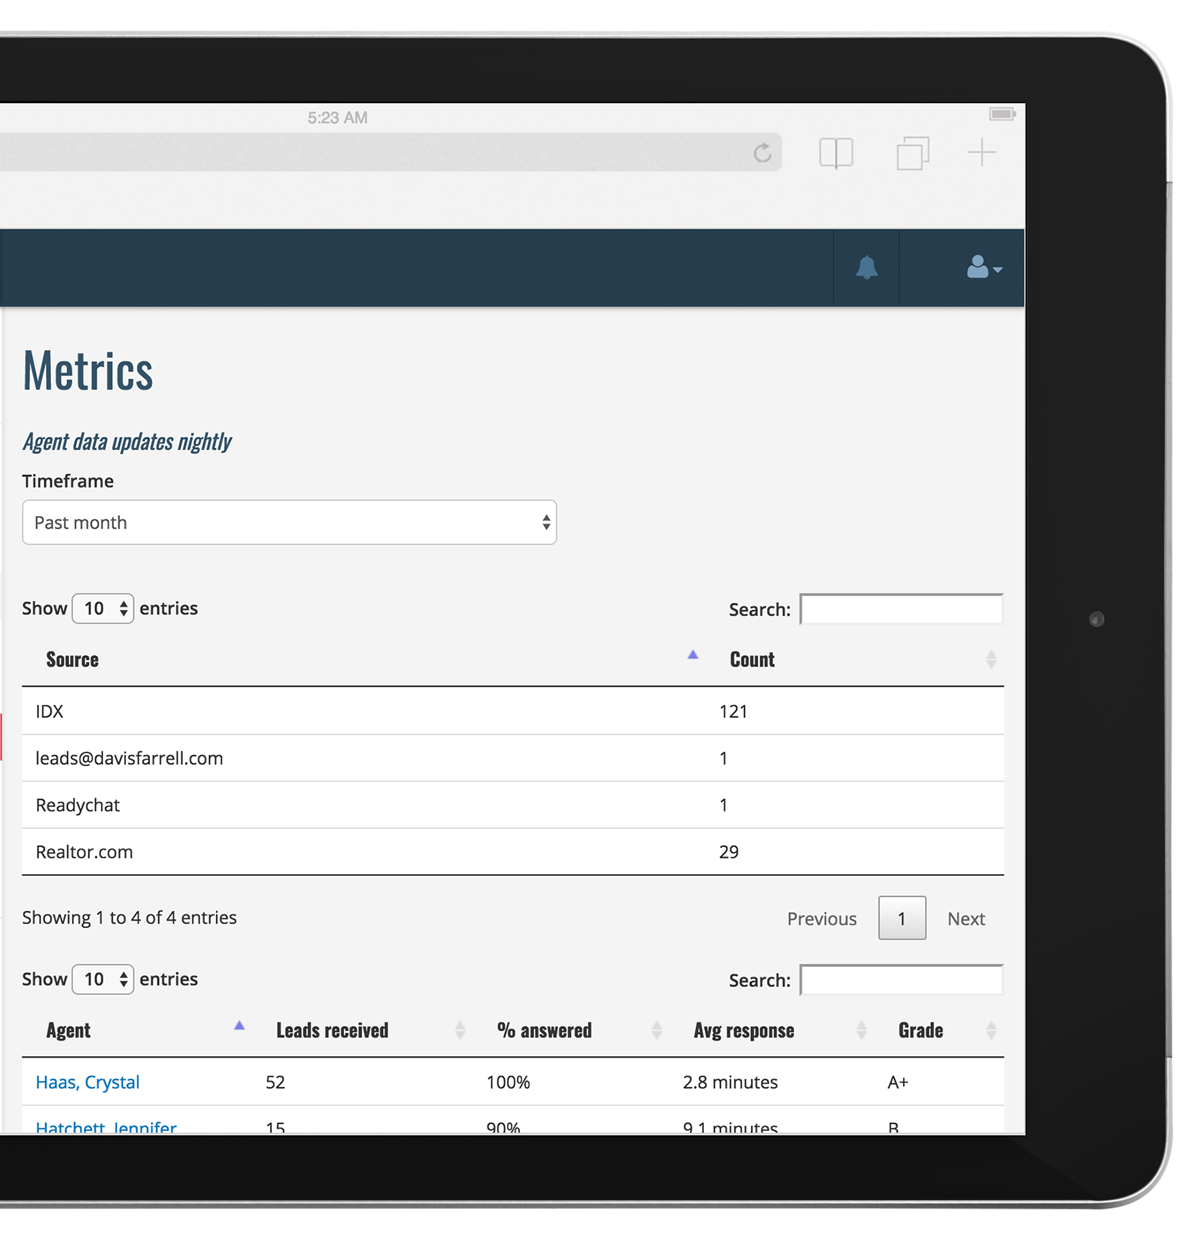 Metrics on the iPad